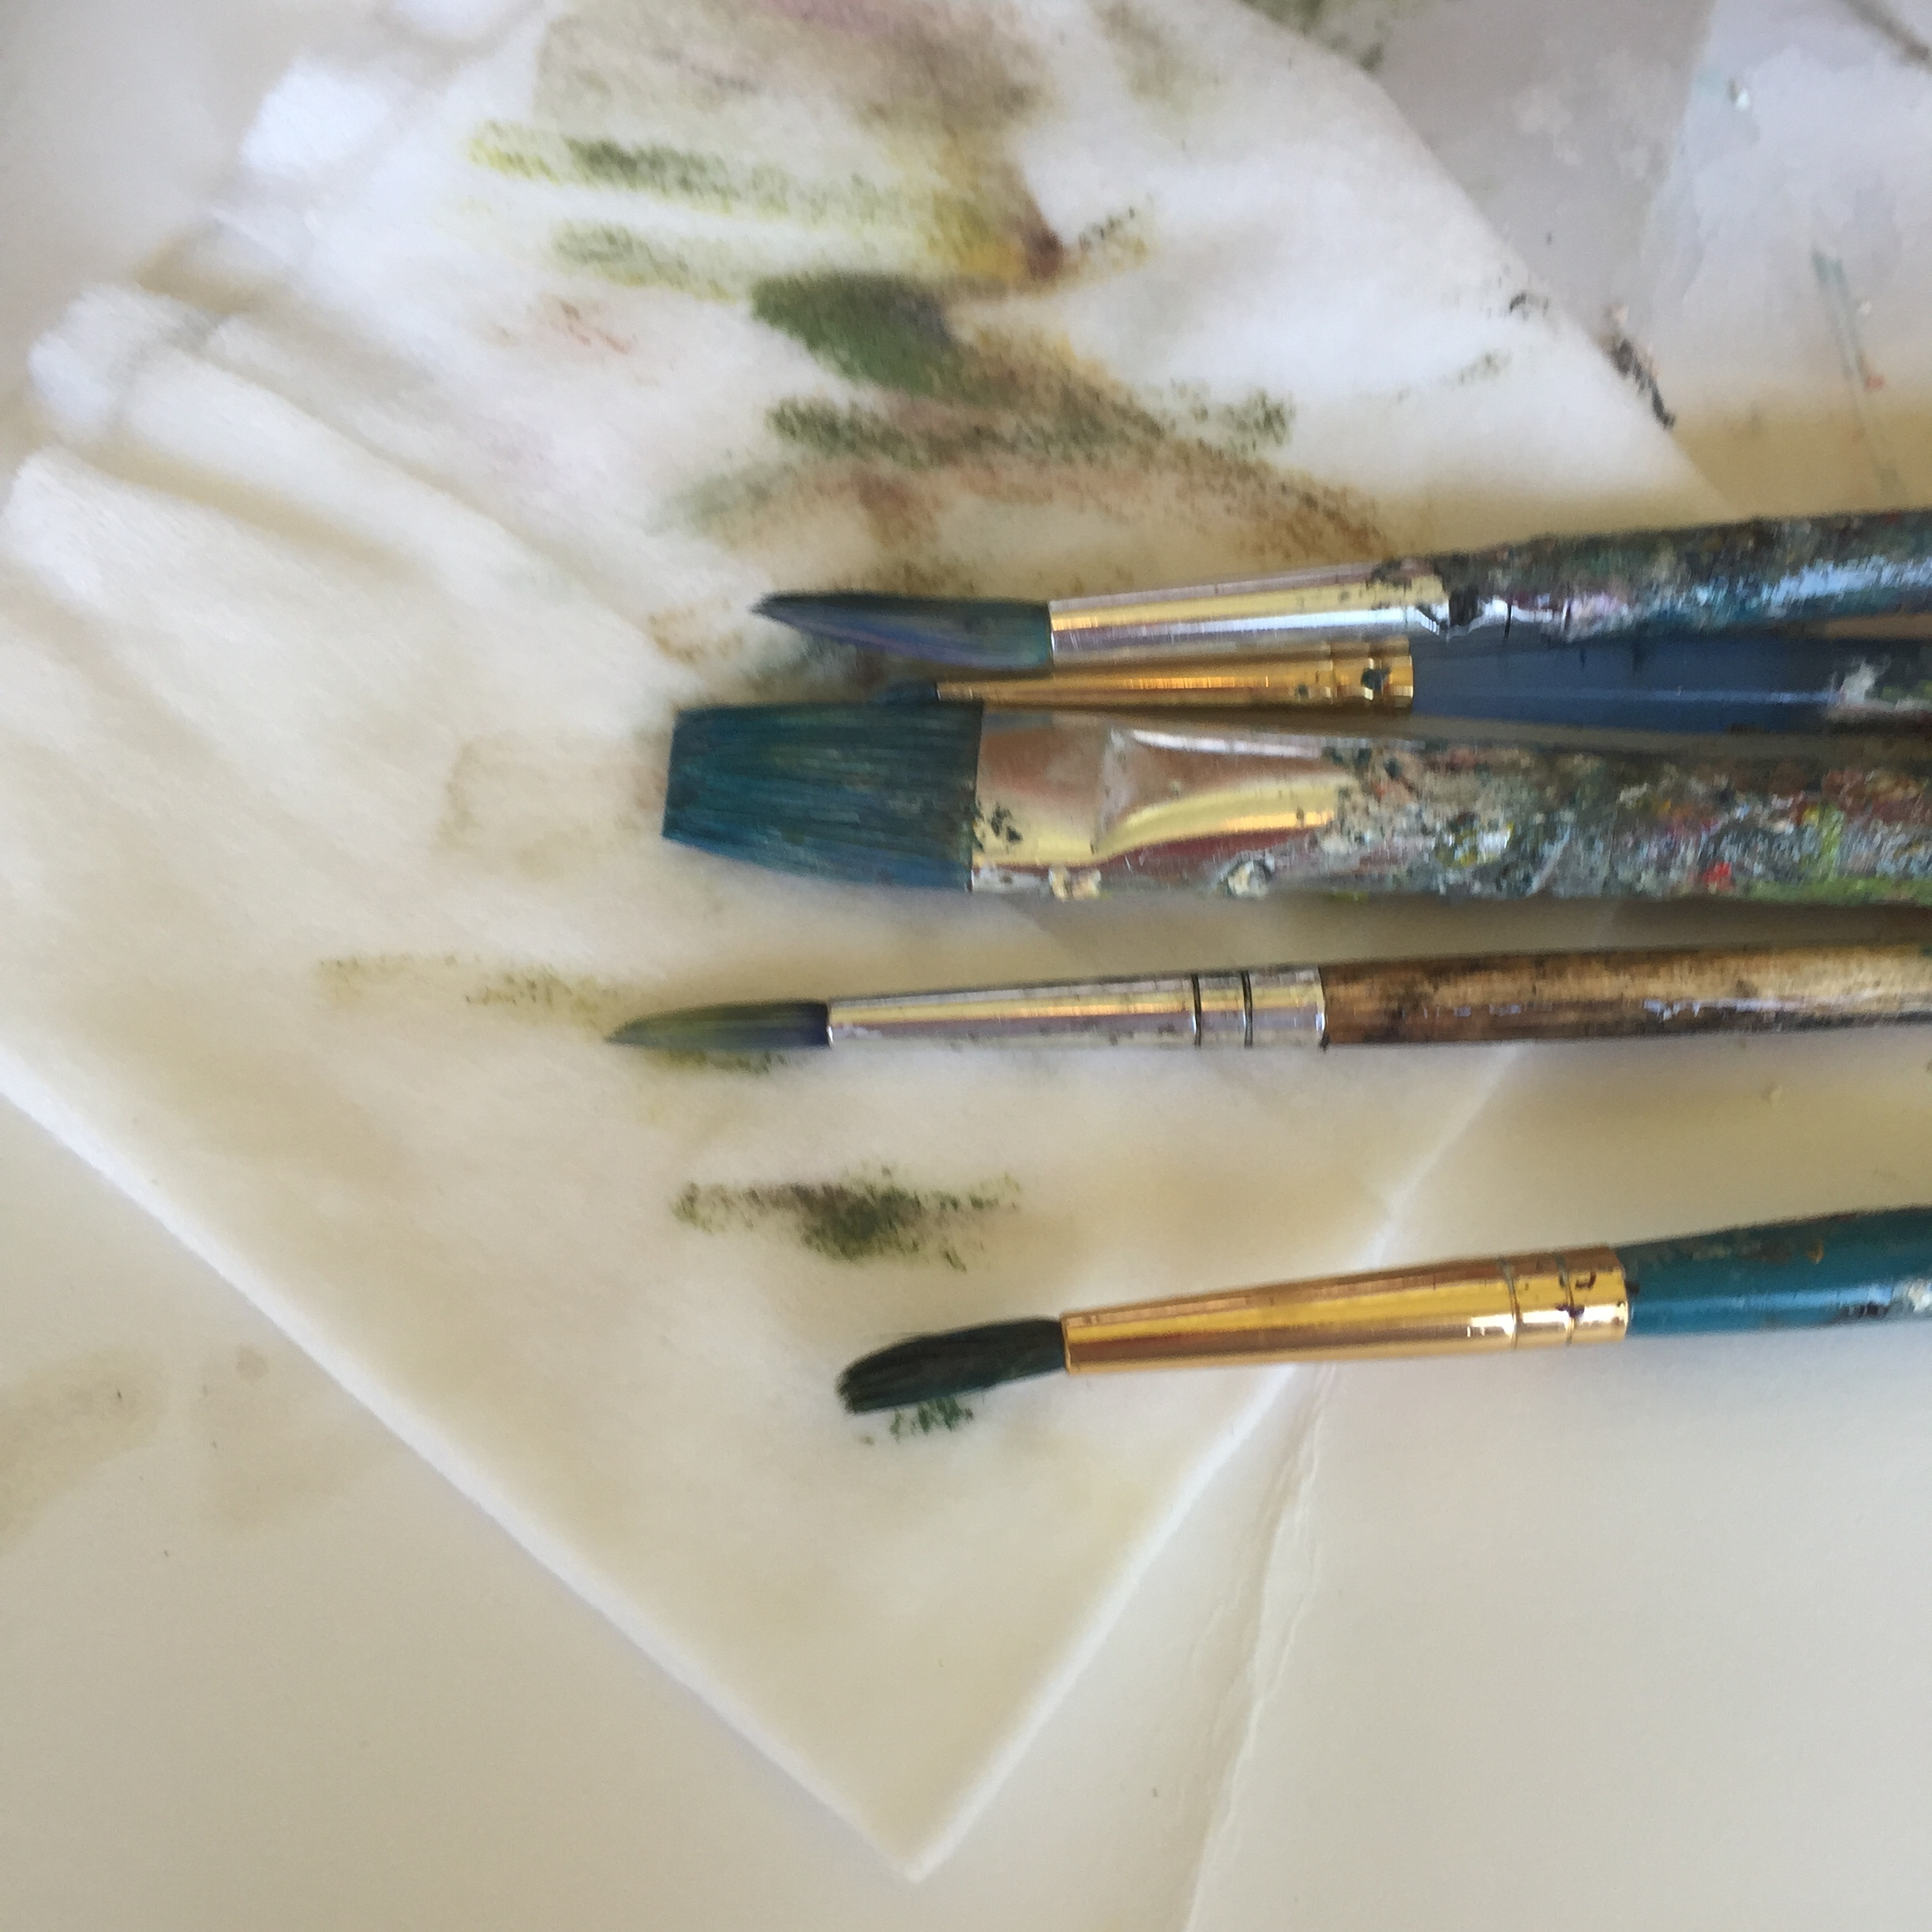 Here, a makeup removal cloth is being used to clean some extremely muddied brushes. That ugly brown-gray color is a sign of overmixing. It is important to get that color off brushes asap!